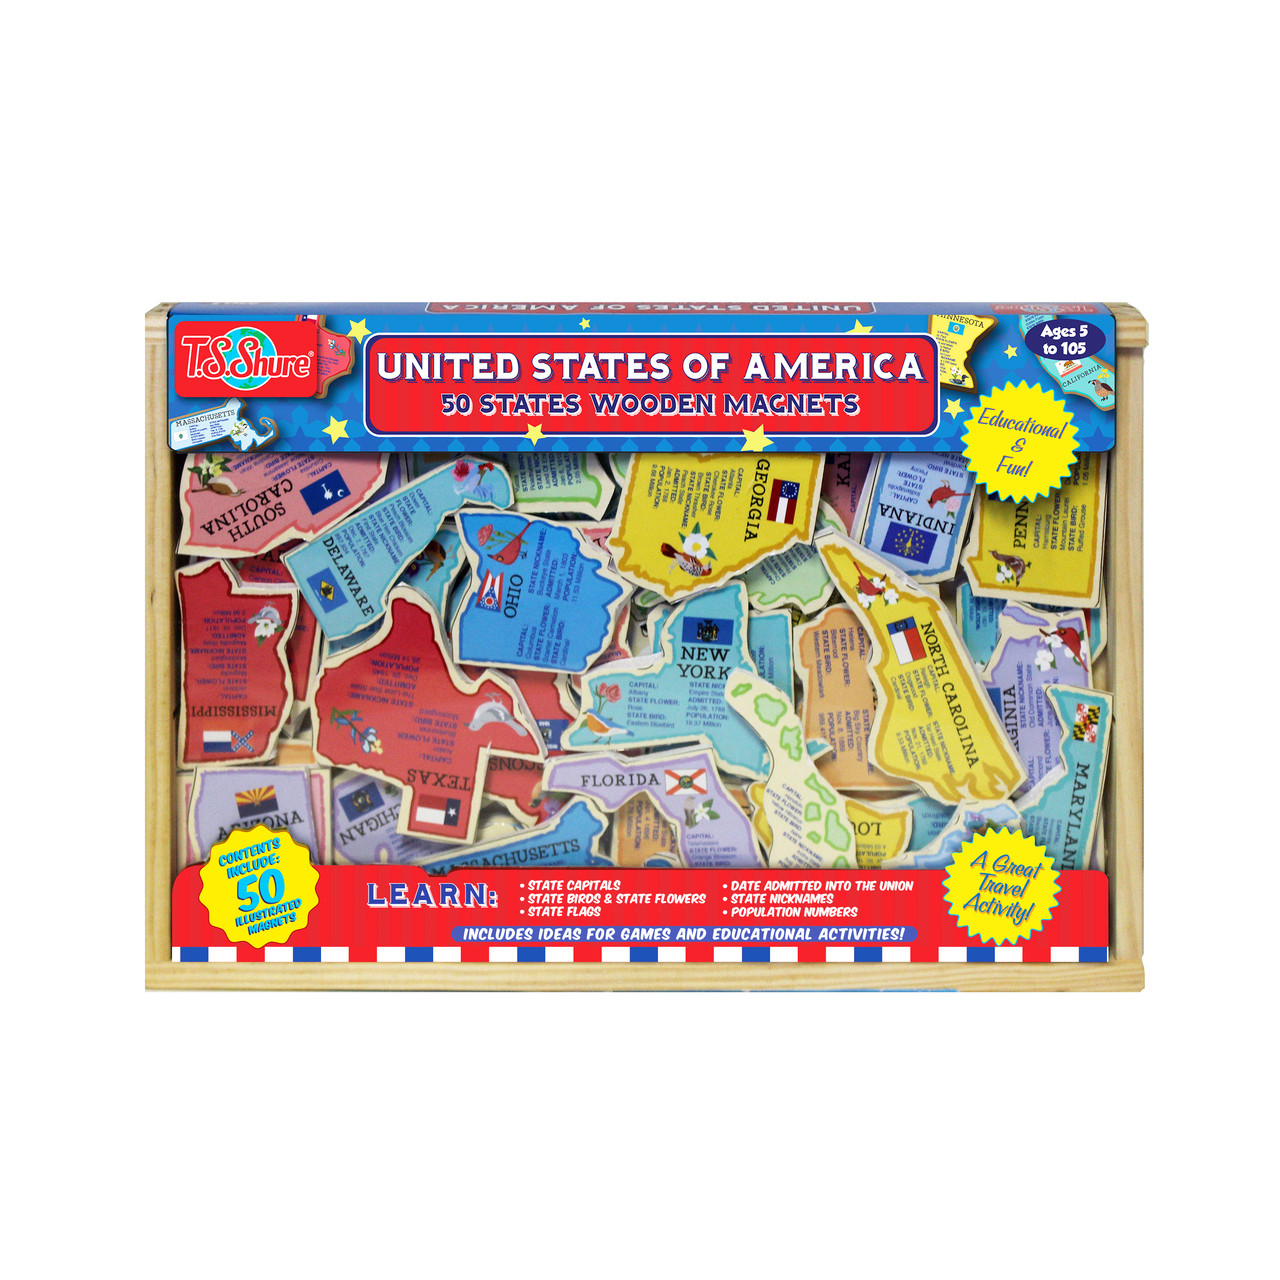 United States of America: 50 States Wooden Magnets